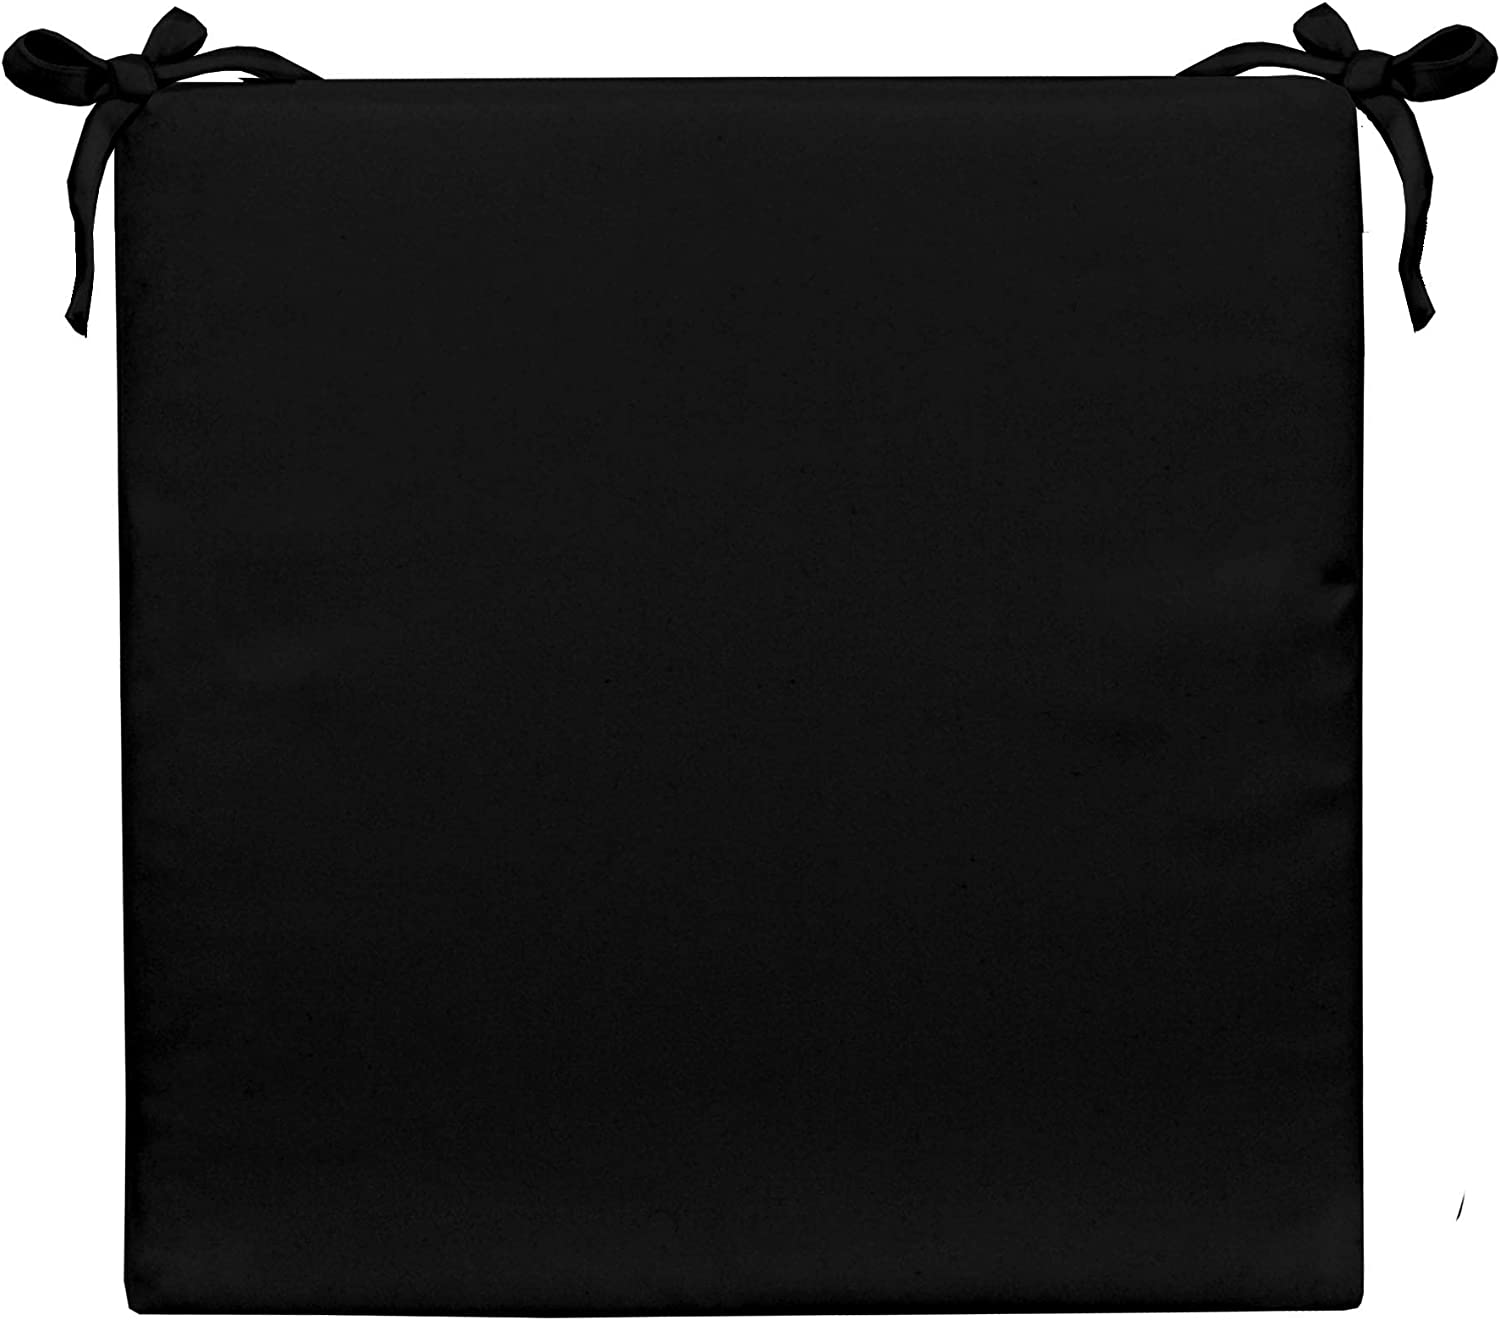 Resort Spa Home Decor Indoor Outdoor Solid Black Square Universal 2 Thick Foam Seat Cushion with Ties for Dining Patio Chair – Choose Size